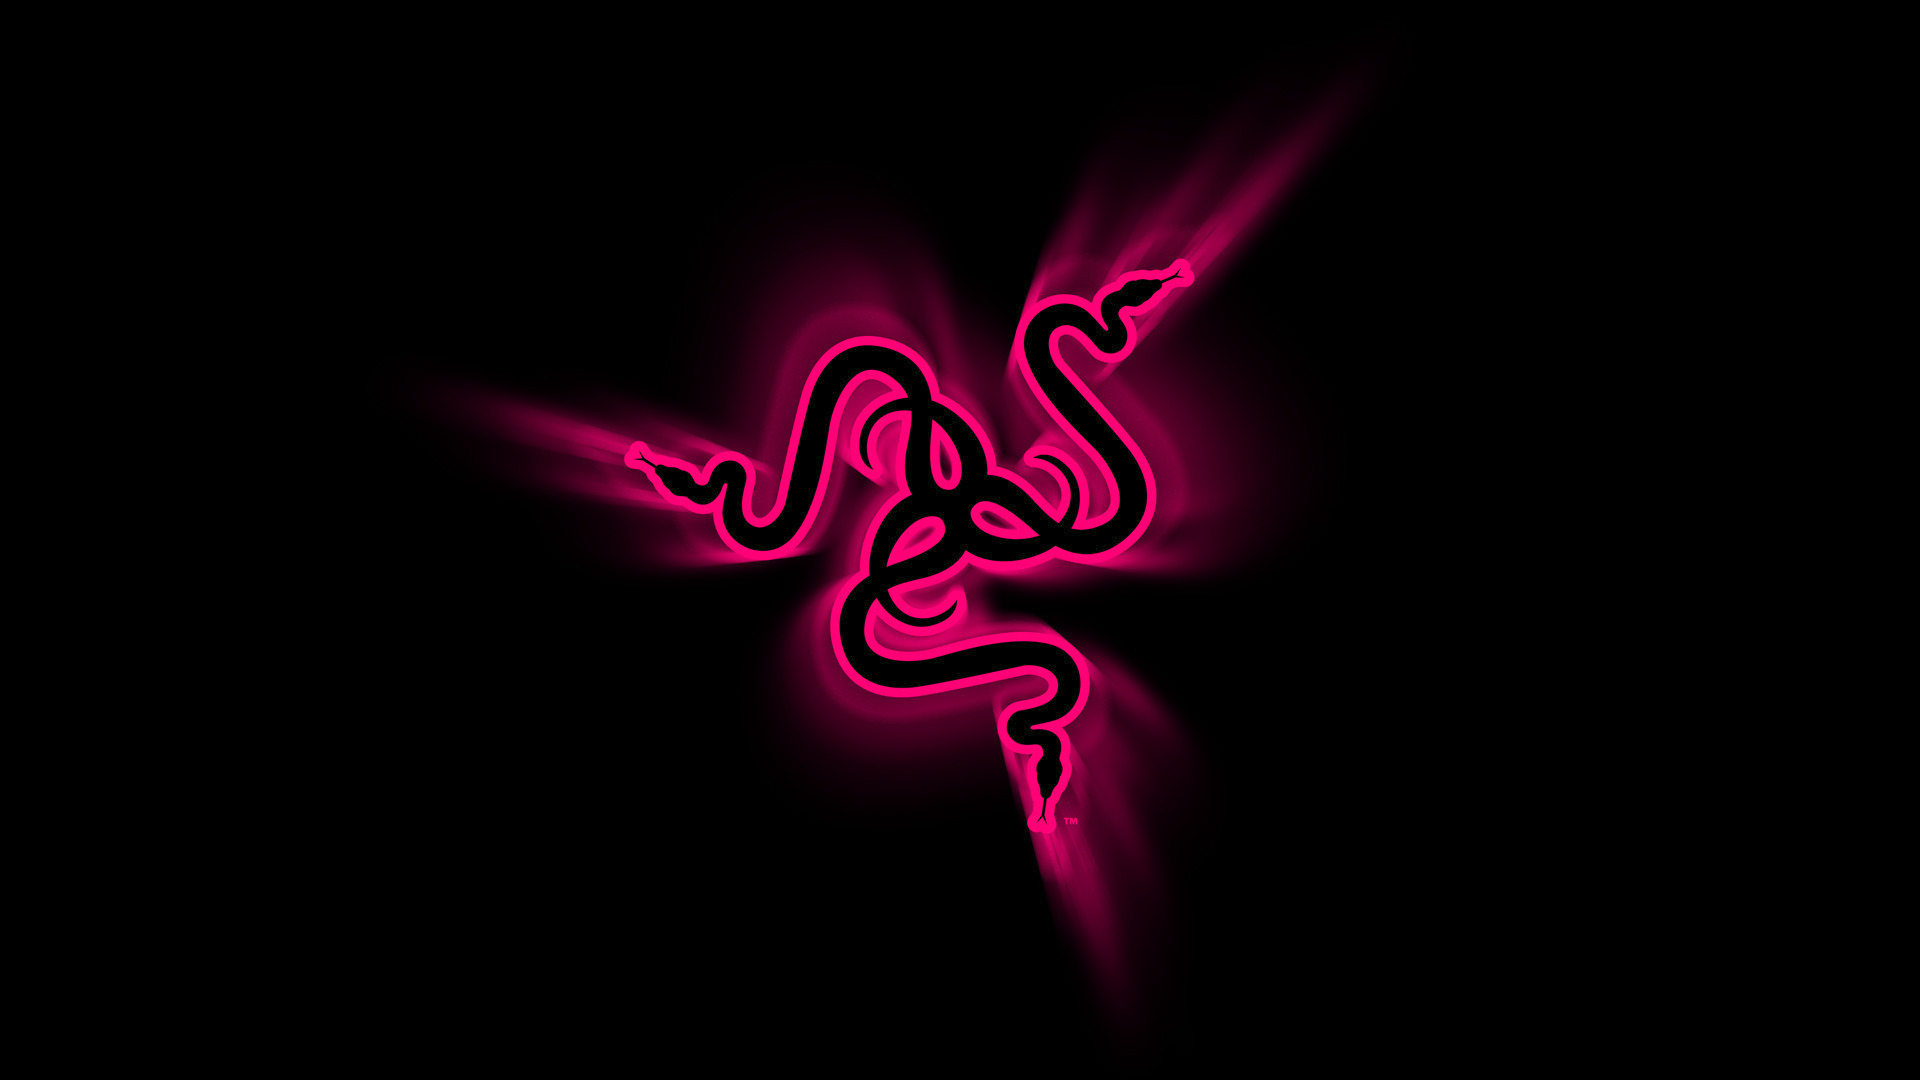 Red Razer Png Hd & Free Red Razer Hd.png Transparent Images.